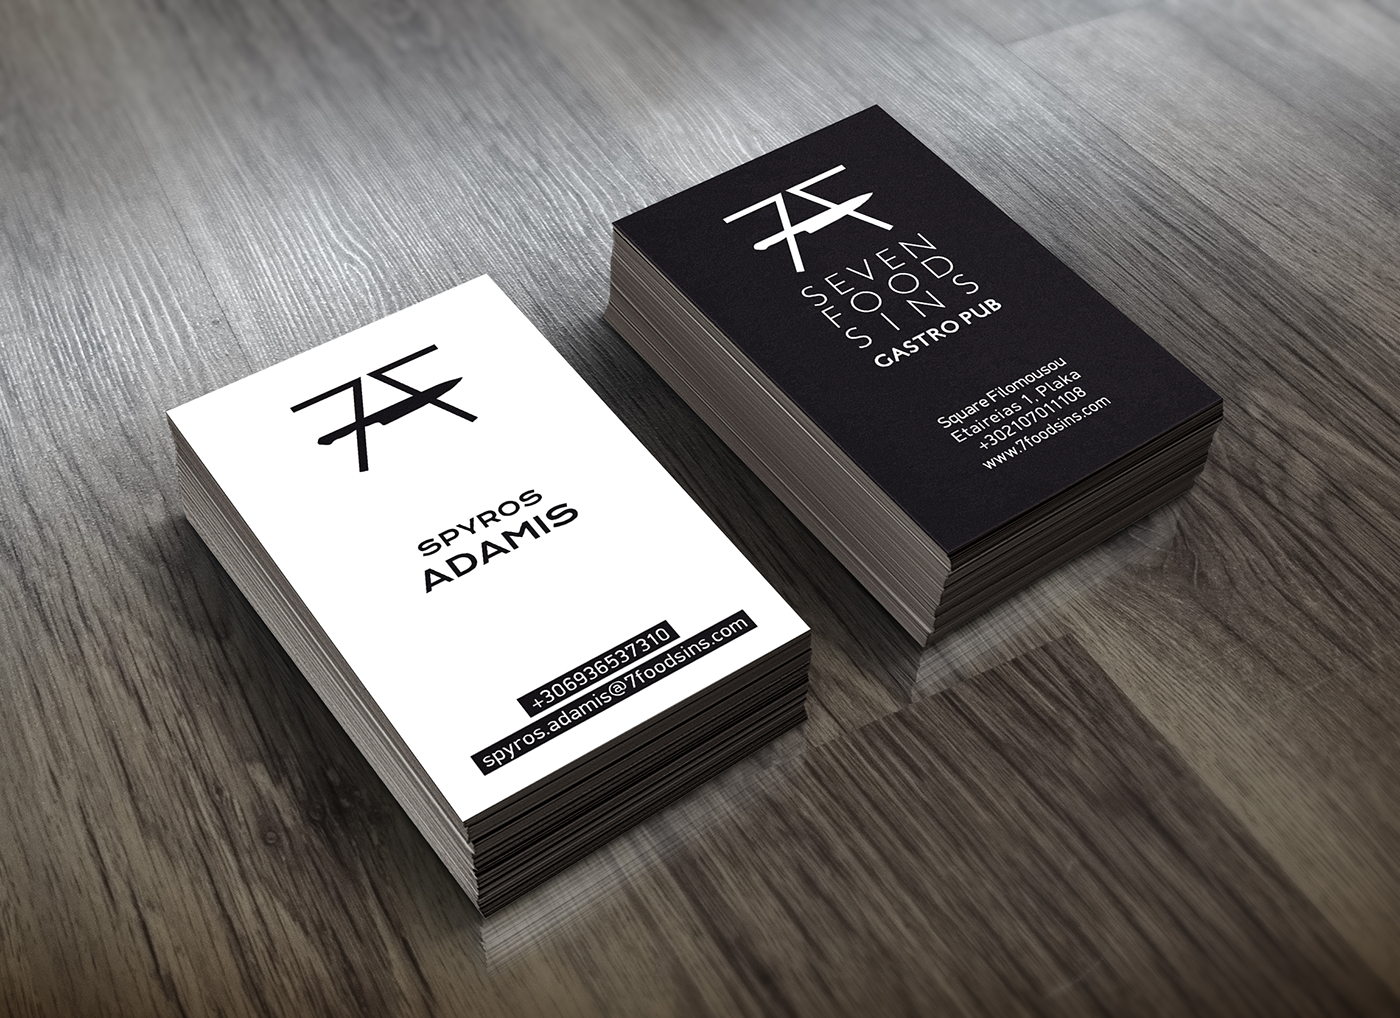 7 food sins business cards